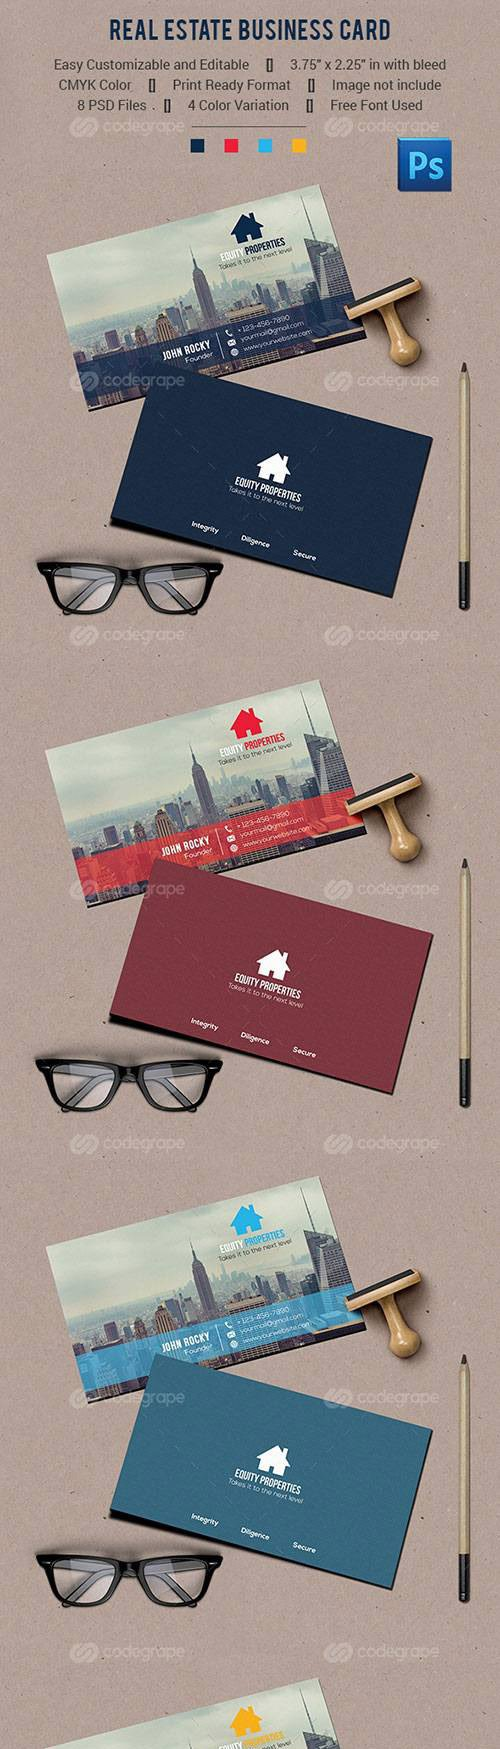 CodeGrape - Real Estate Business Card 10880